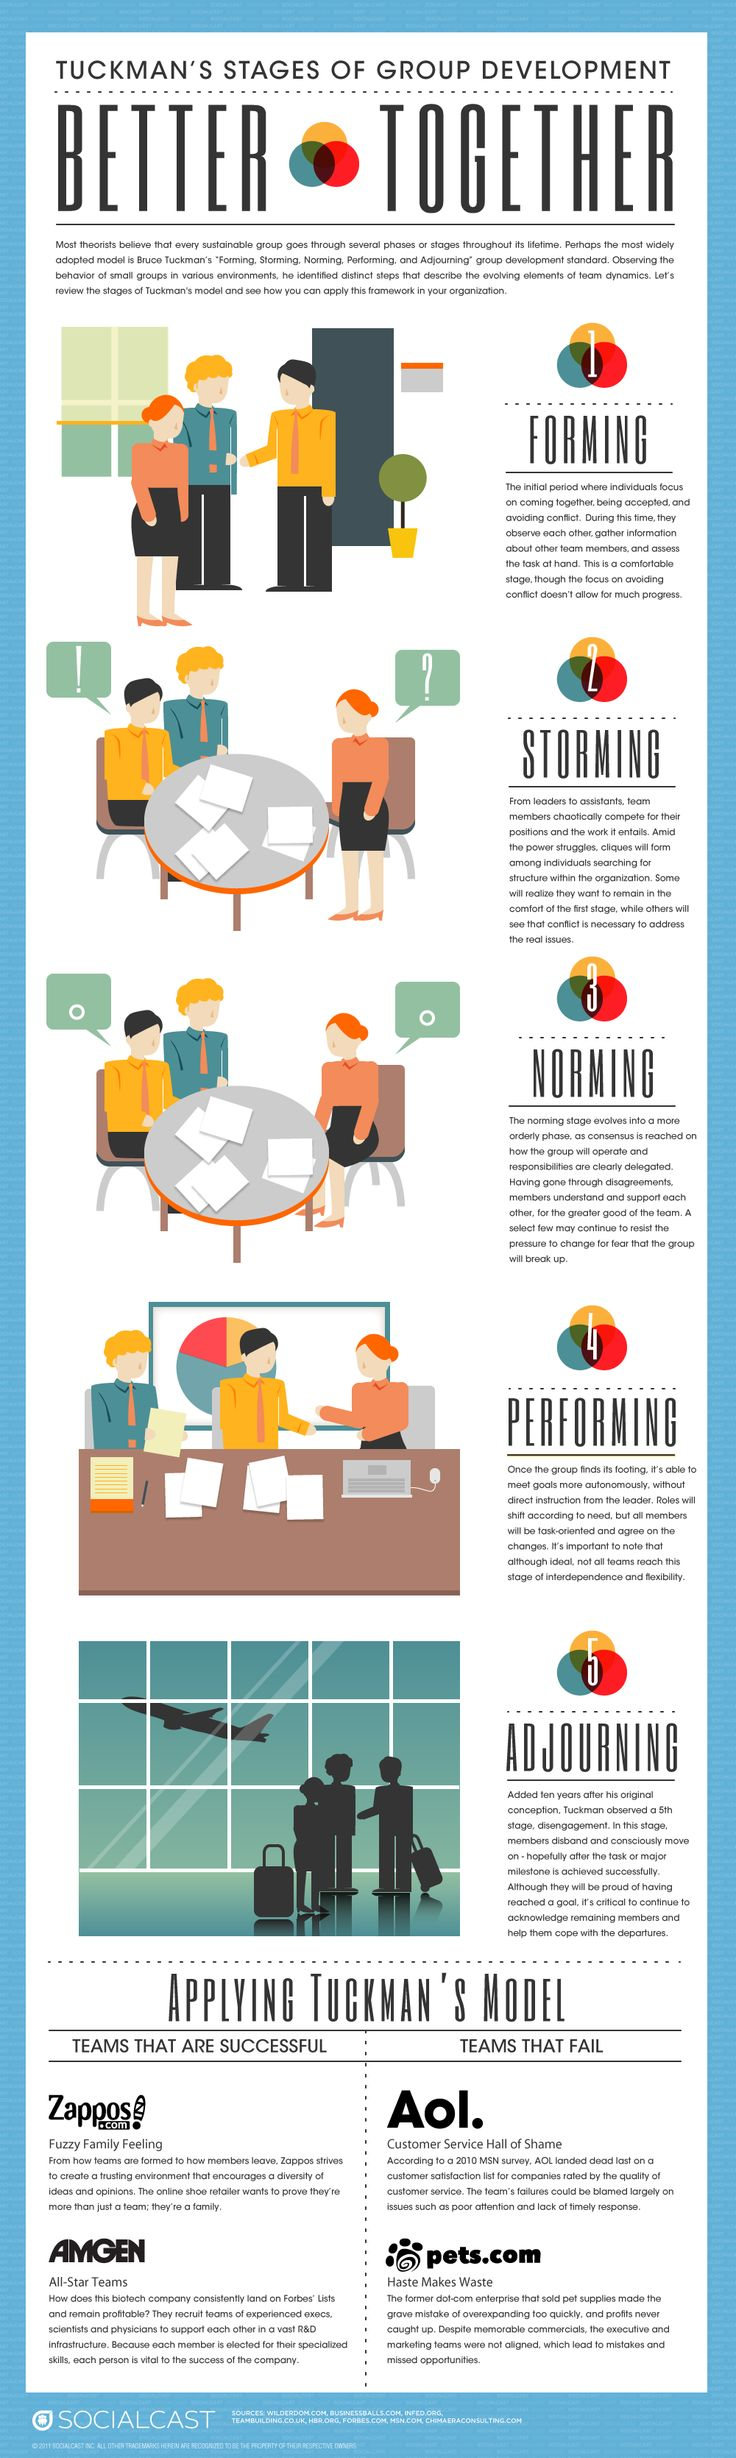 Nice #infographic about the #Tuckman stages of #groupdevelopment! Check it: http://www.toolshero.com/infographics/better-together/